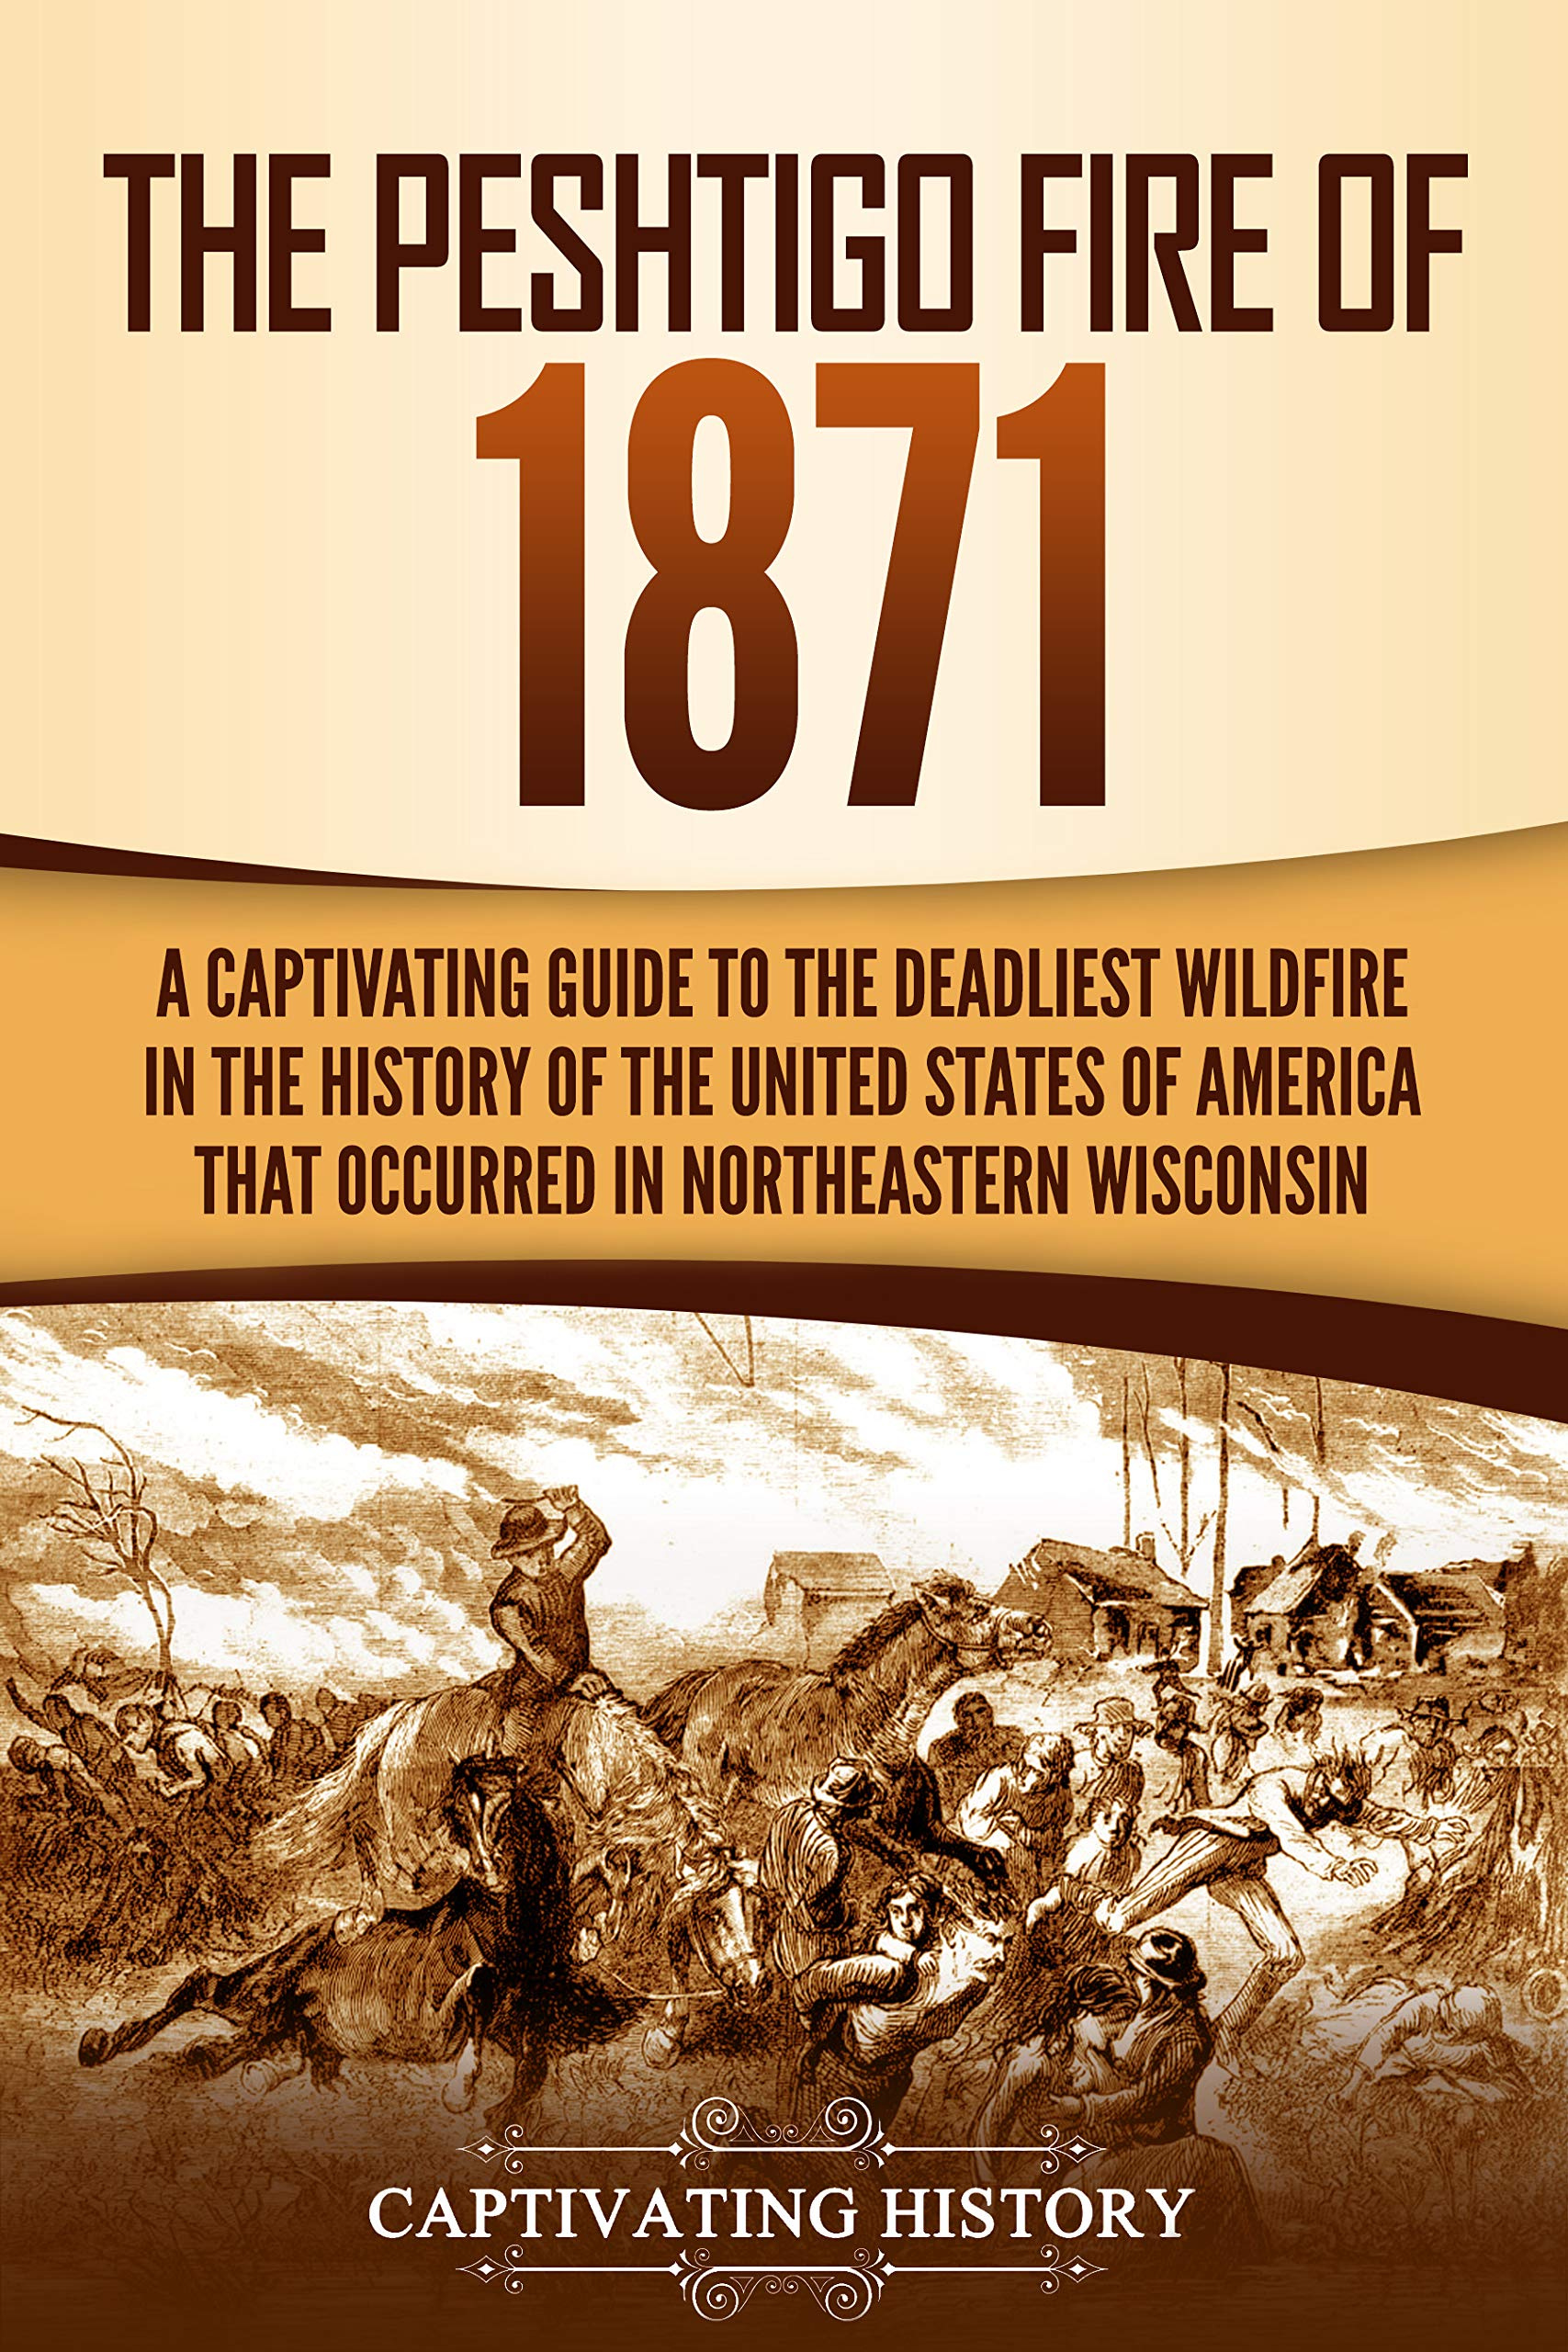 The Peshtigo Fire of 1871: A Captivating Guide to the Deadliest Wildfire in the History of the United States of America That Occurred in Northeastern Wisconsin